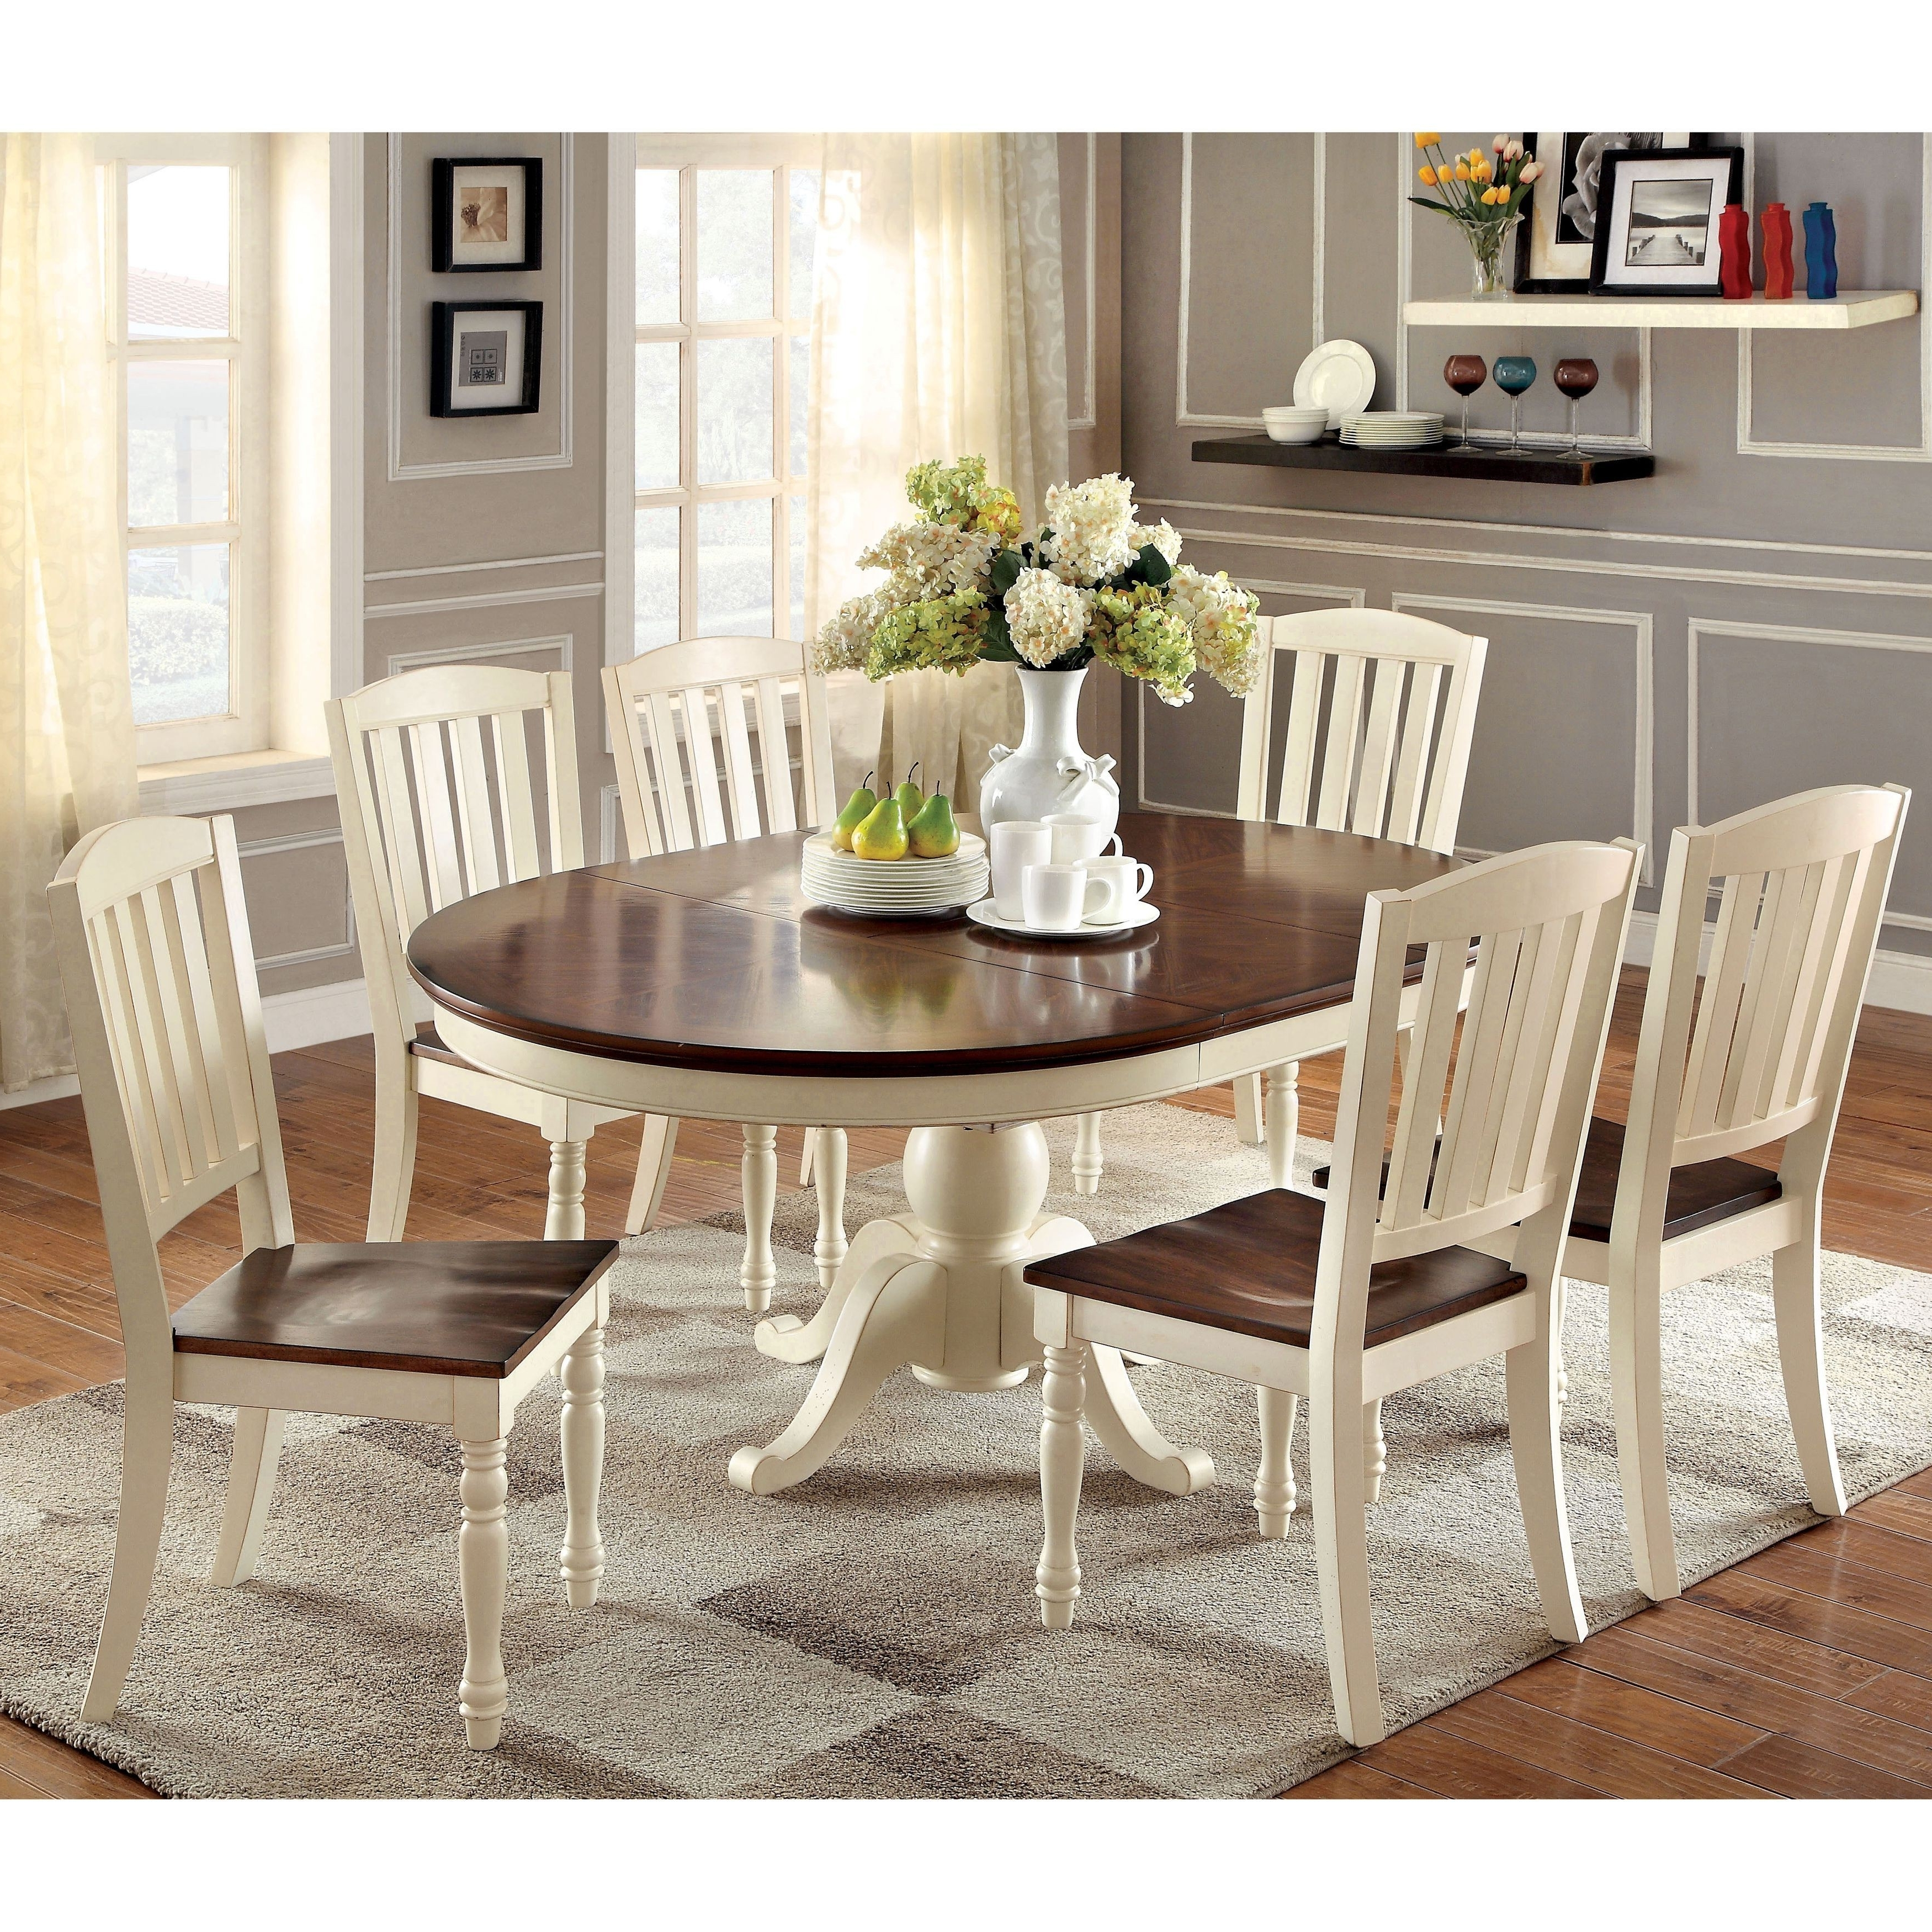 Trendy Magnolia Home English Country Oval Dining Tables Pertaining To White Oval Extending Dining Table Lovely English Country Oval Dining (View 10 of 25)